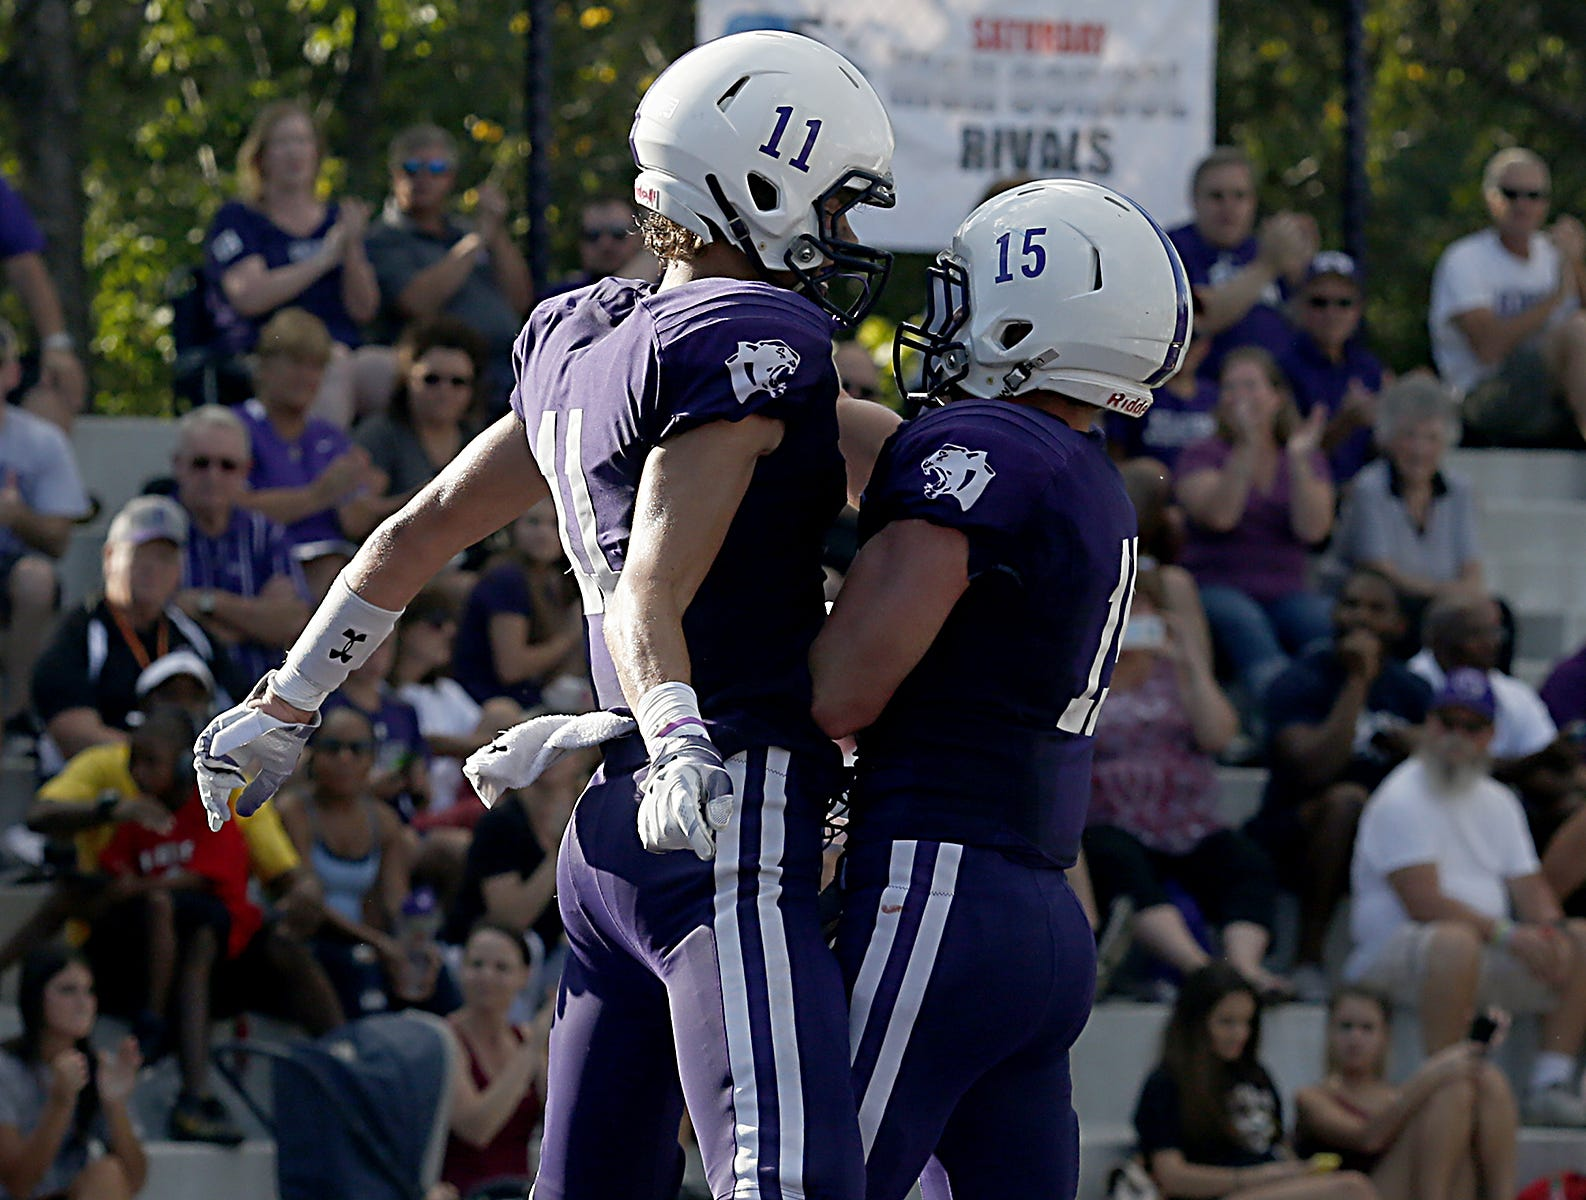 Elder's Joe Royer and Luke Masminster celebrate Roye's touchdown against St. Edward during their game at The Pit in Cincinnati Saturday, Sept. 15, 2018.